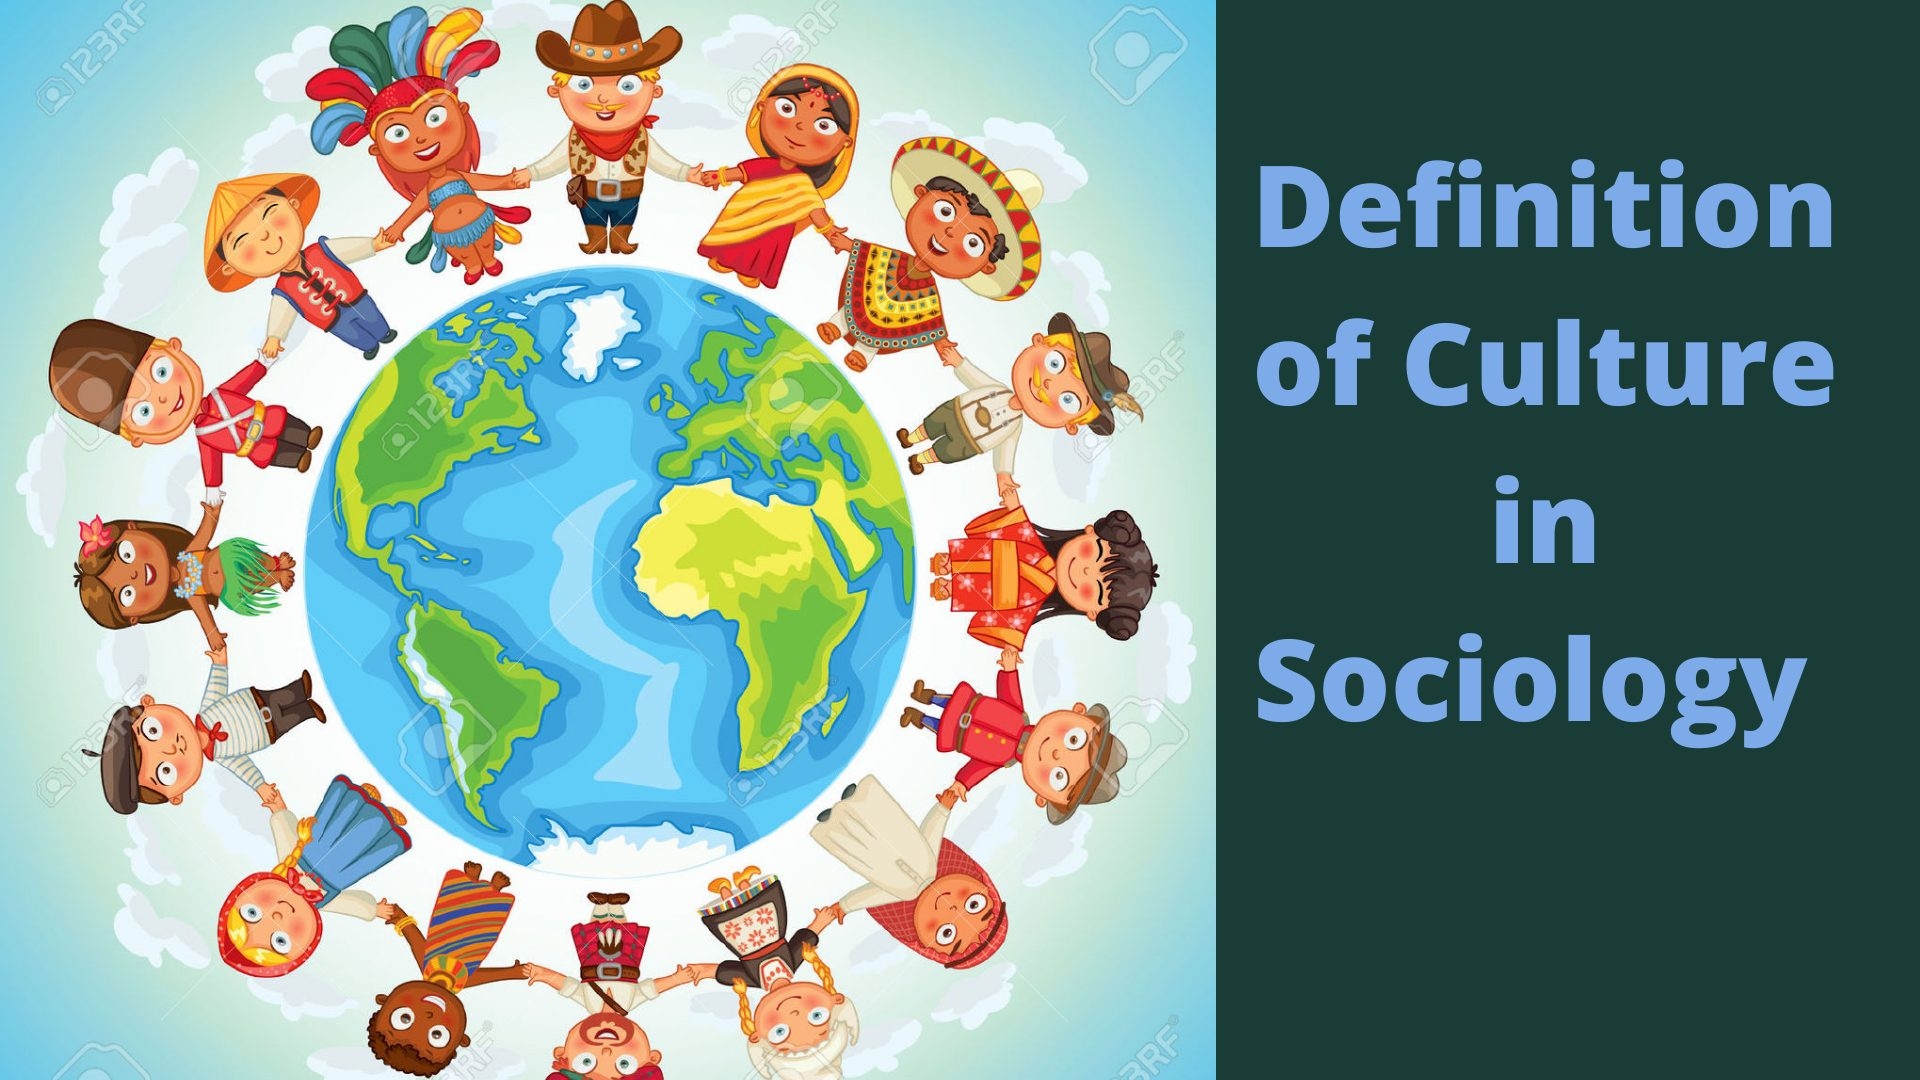 Definition of Culture in Sociology